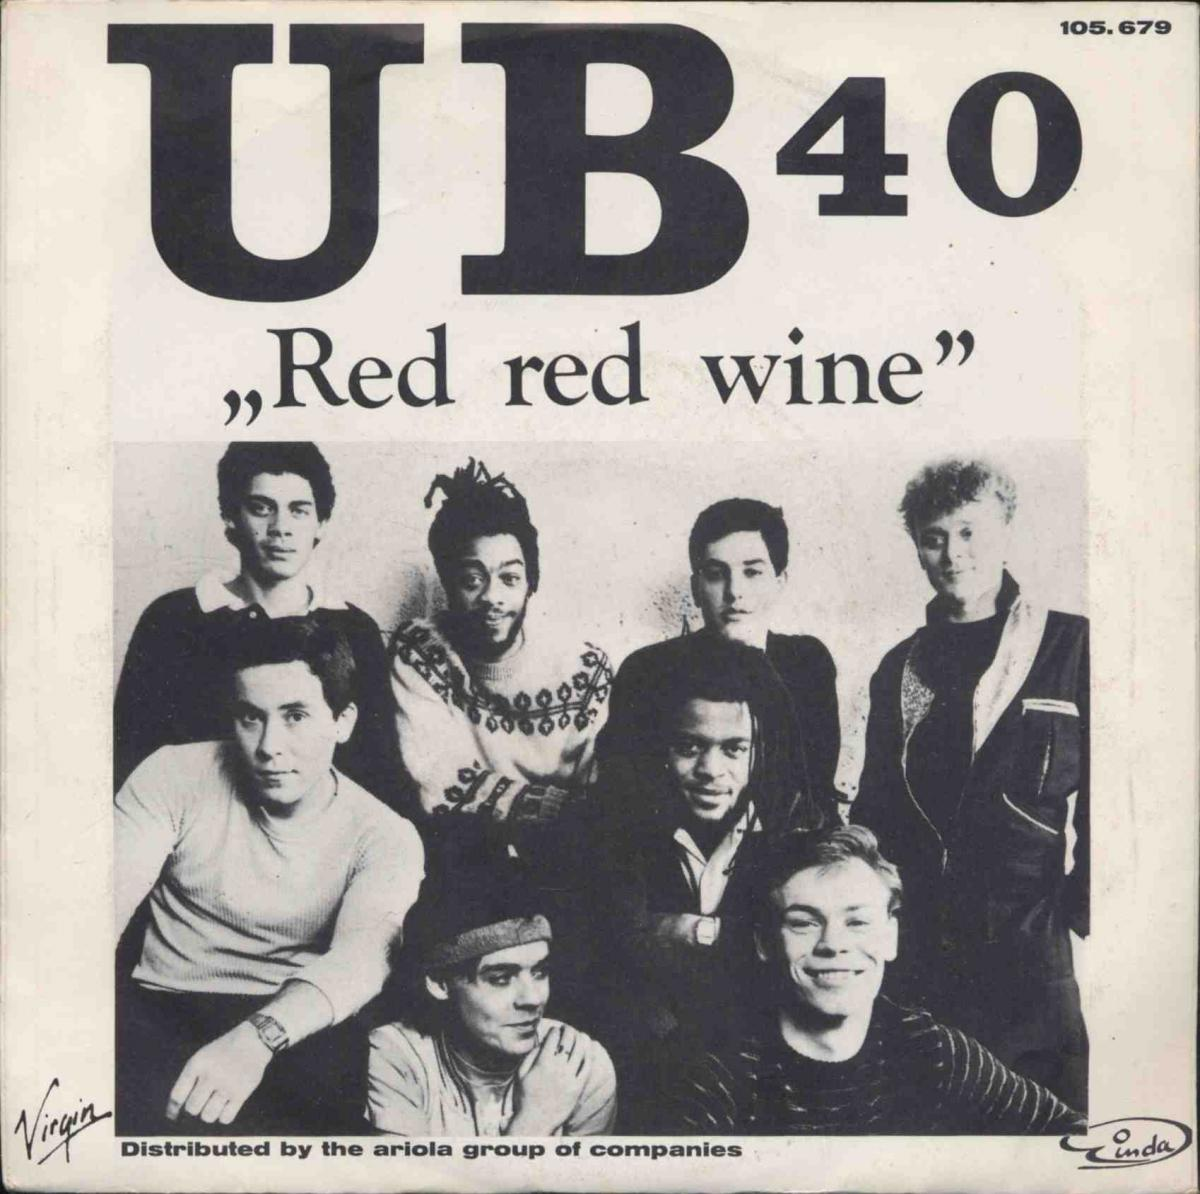 Vinyl-Single: <b><br>UB 40: <br>Red Red Wine / Sufferin\' </b><br>Virgin 105.679, (P) 1983